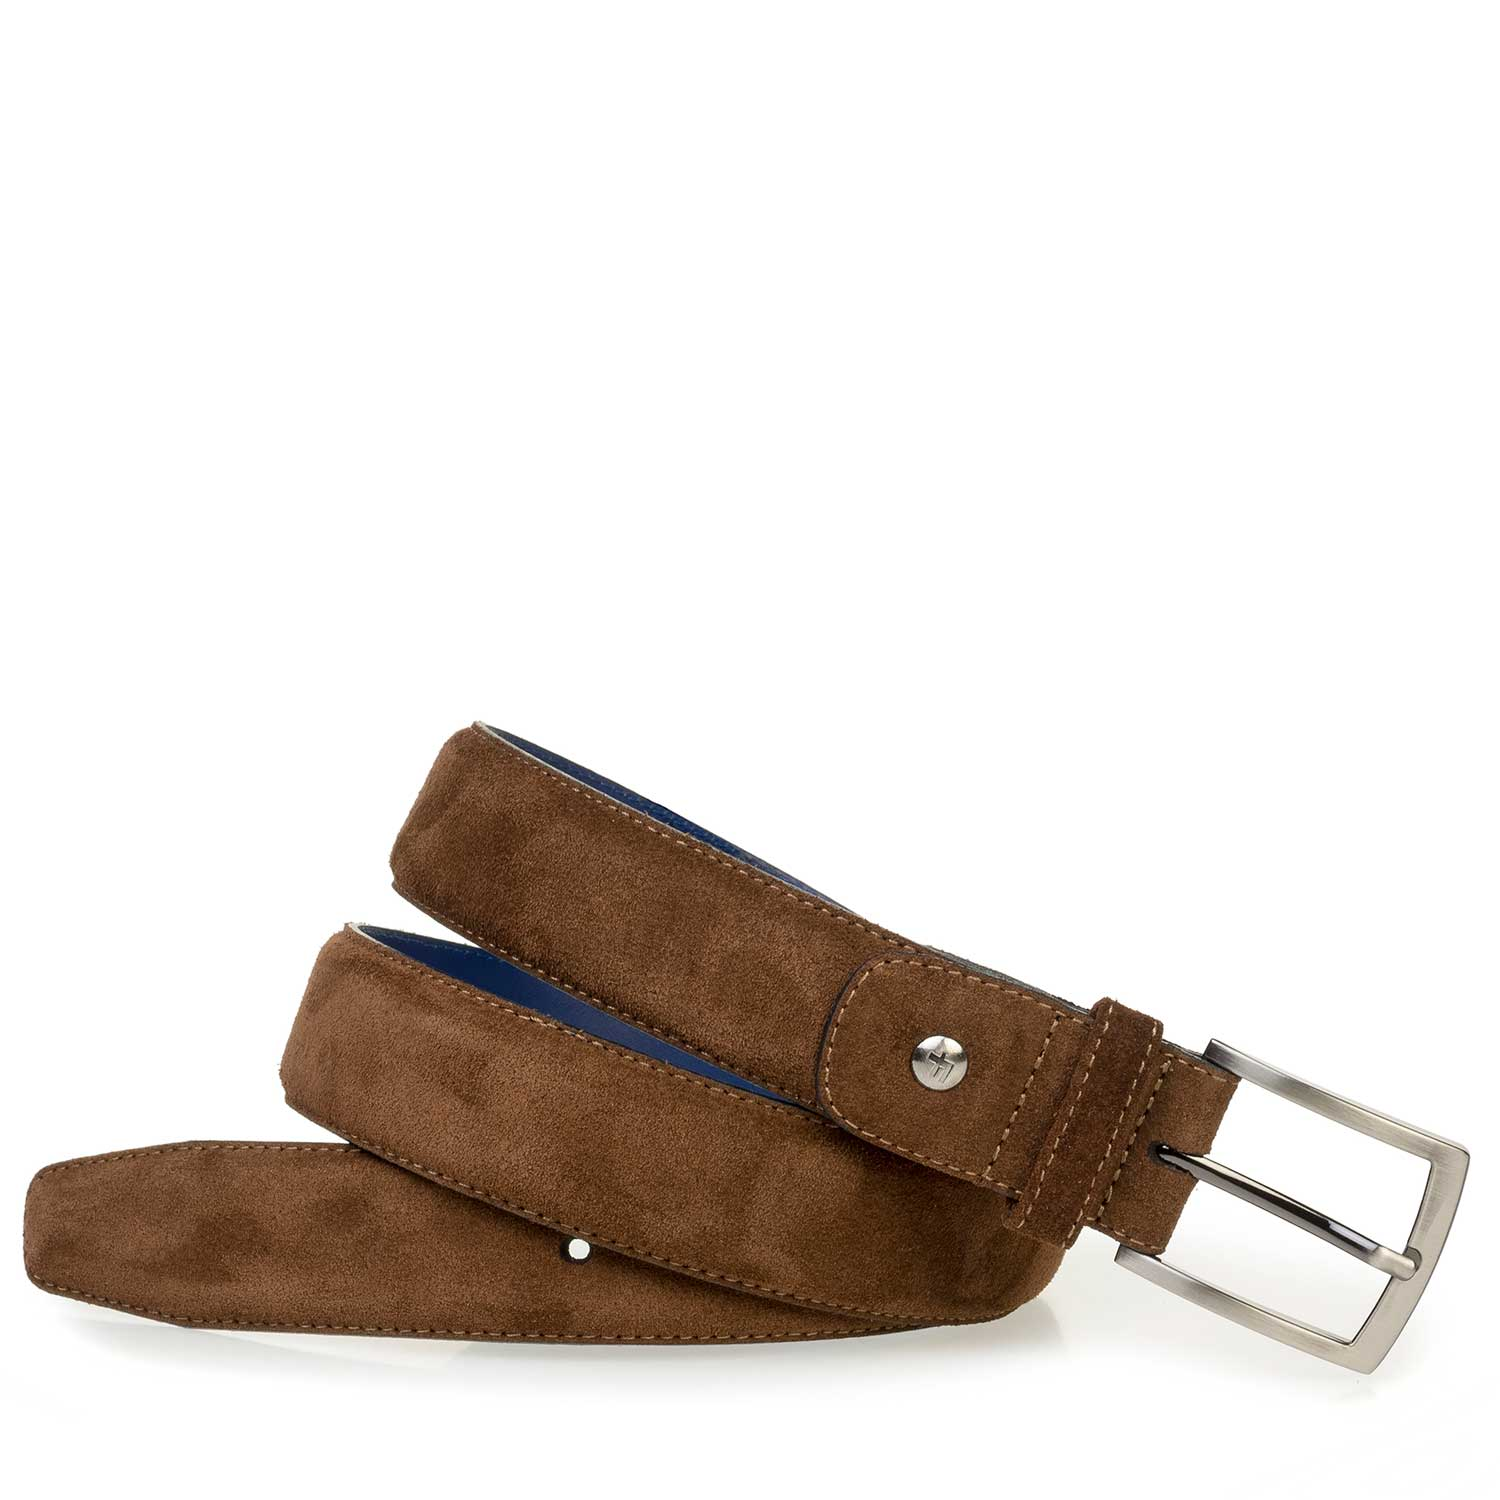 75153/25 - Brown calf suede leather belt